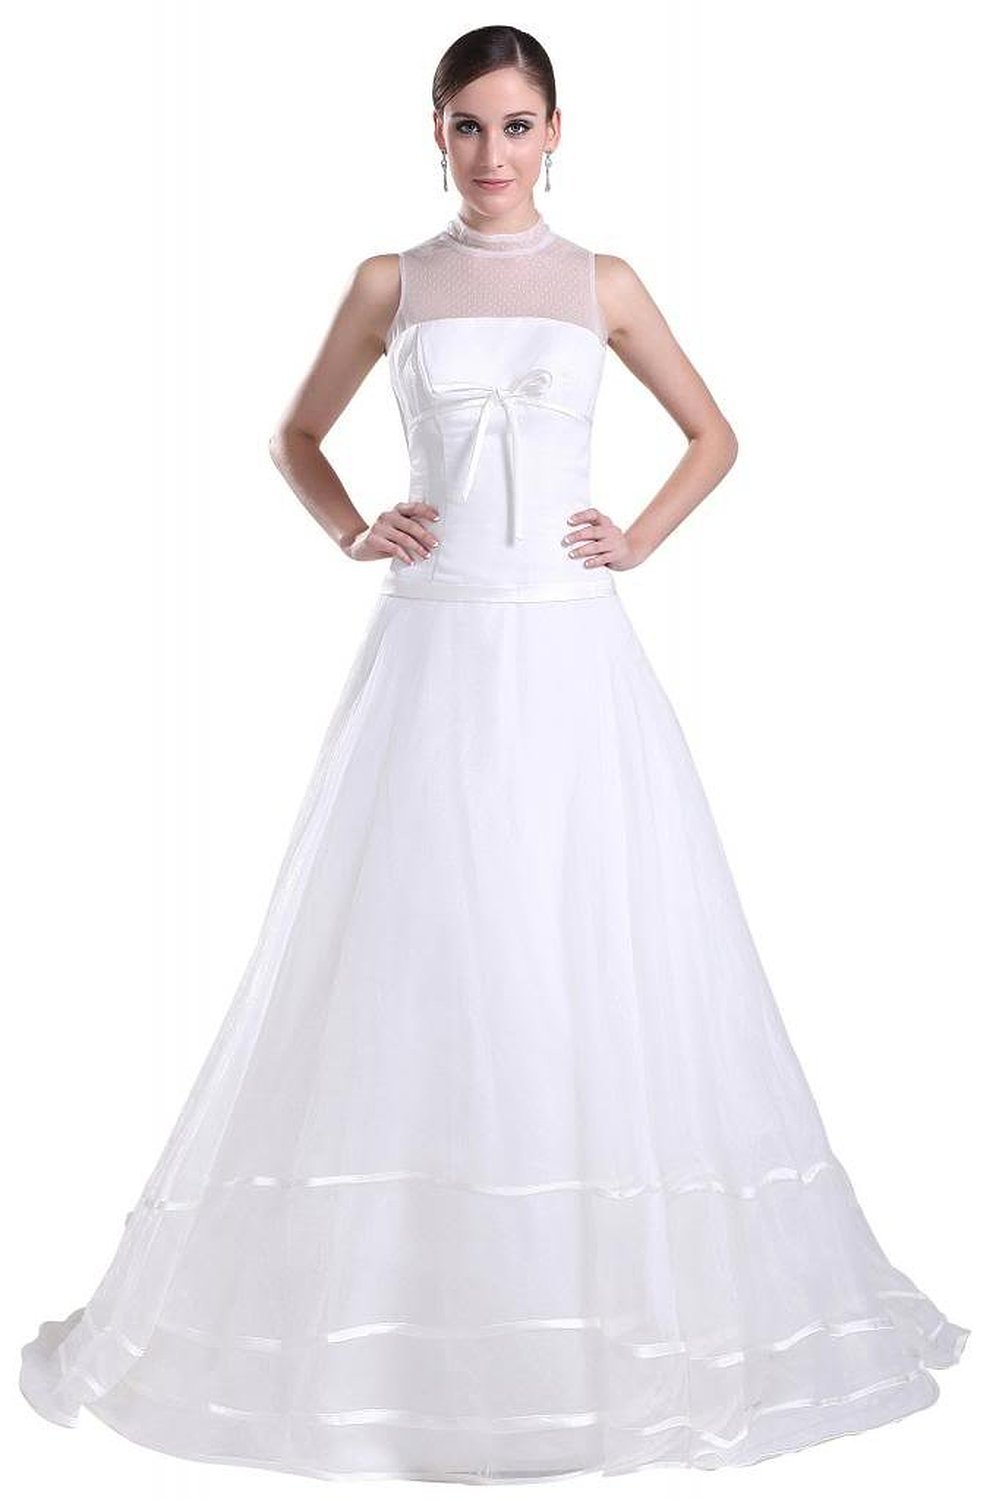 Simple Wedding Dress High Neck : Albizia new simple high neck strapless sweep train wedding